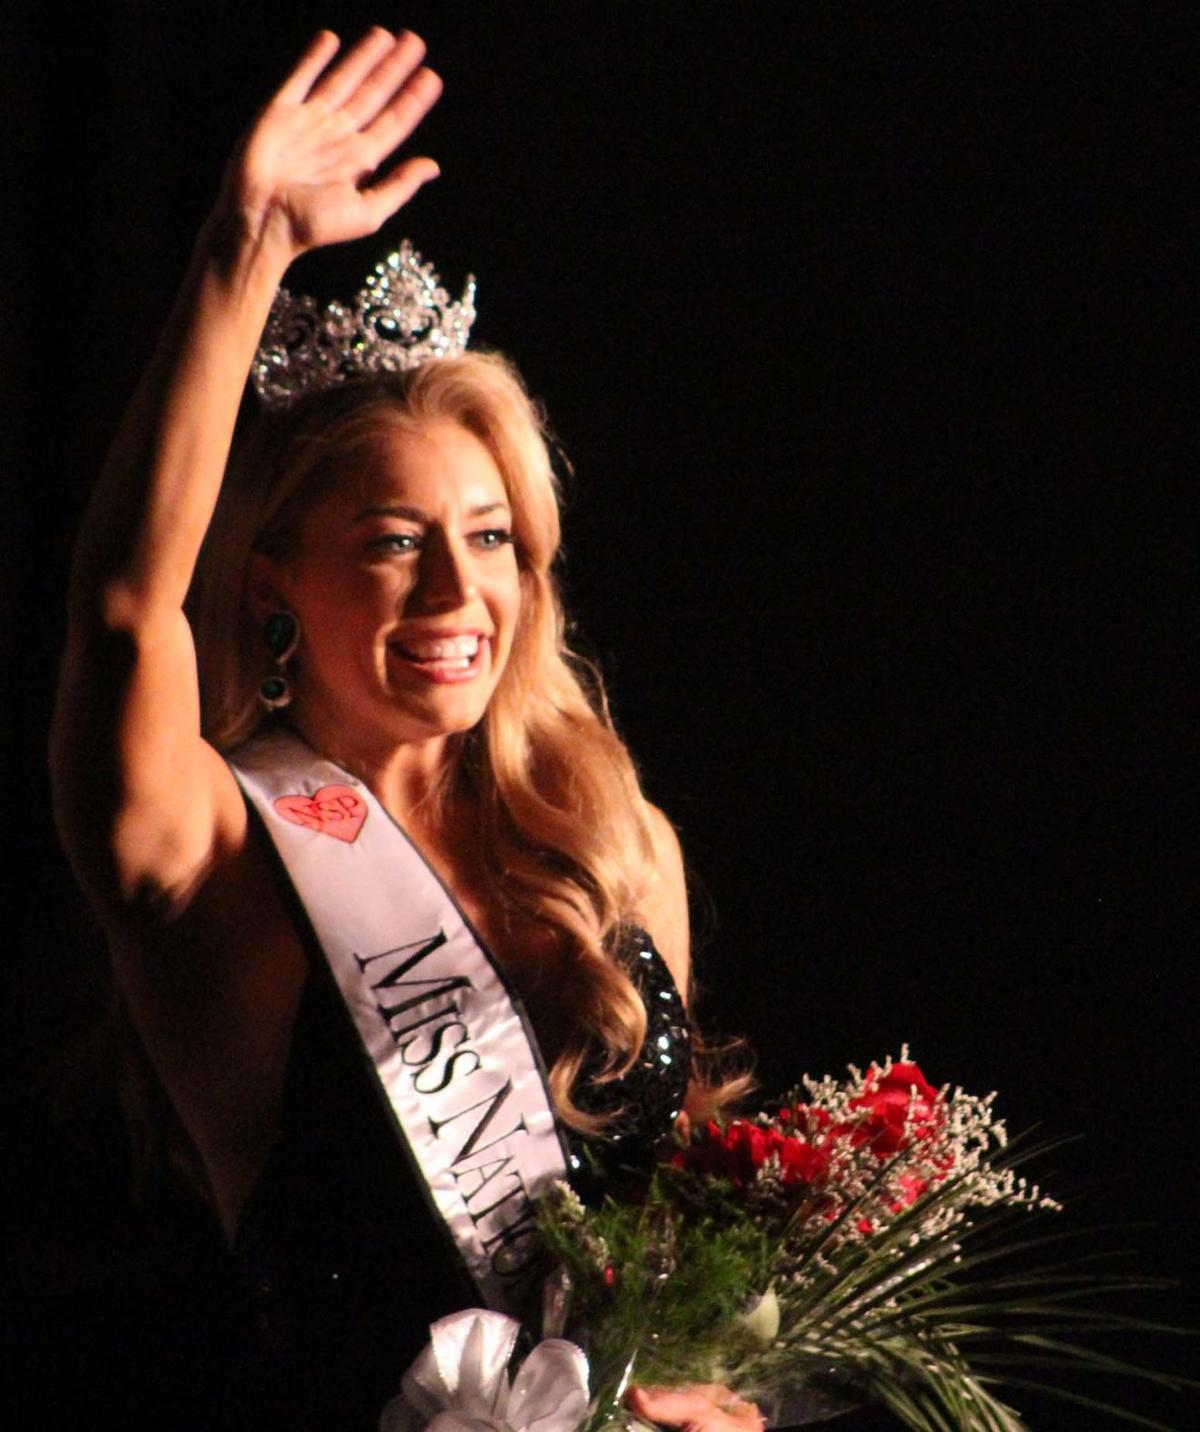 Leinbach wins National Sweetheart Pageant